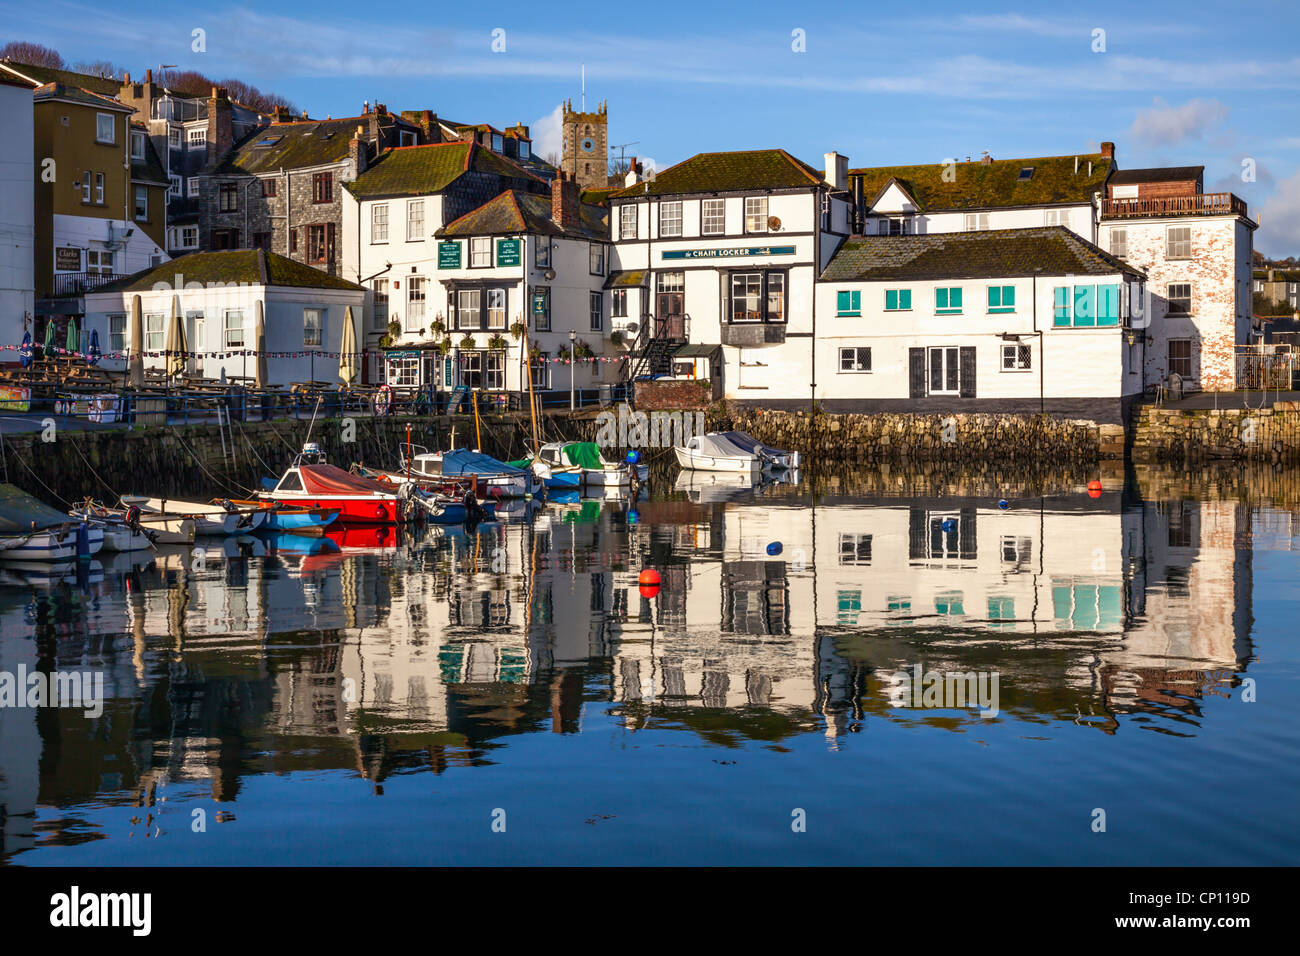 Custom House Quay at Falmouth in Cornwall - Stock Image